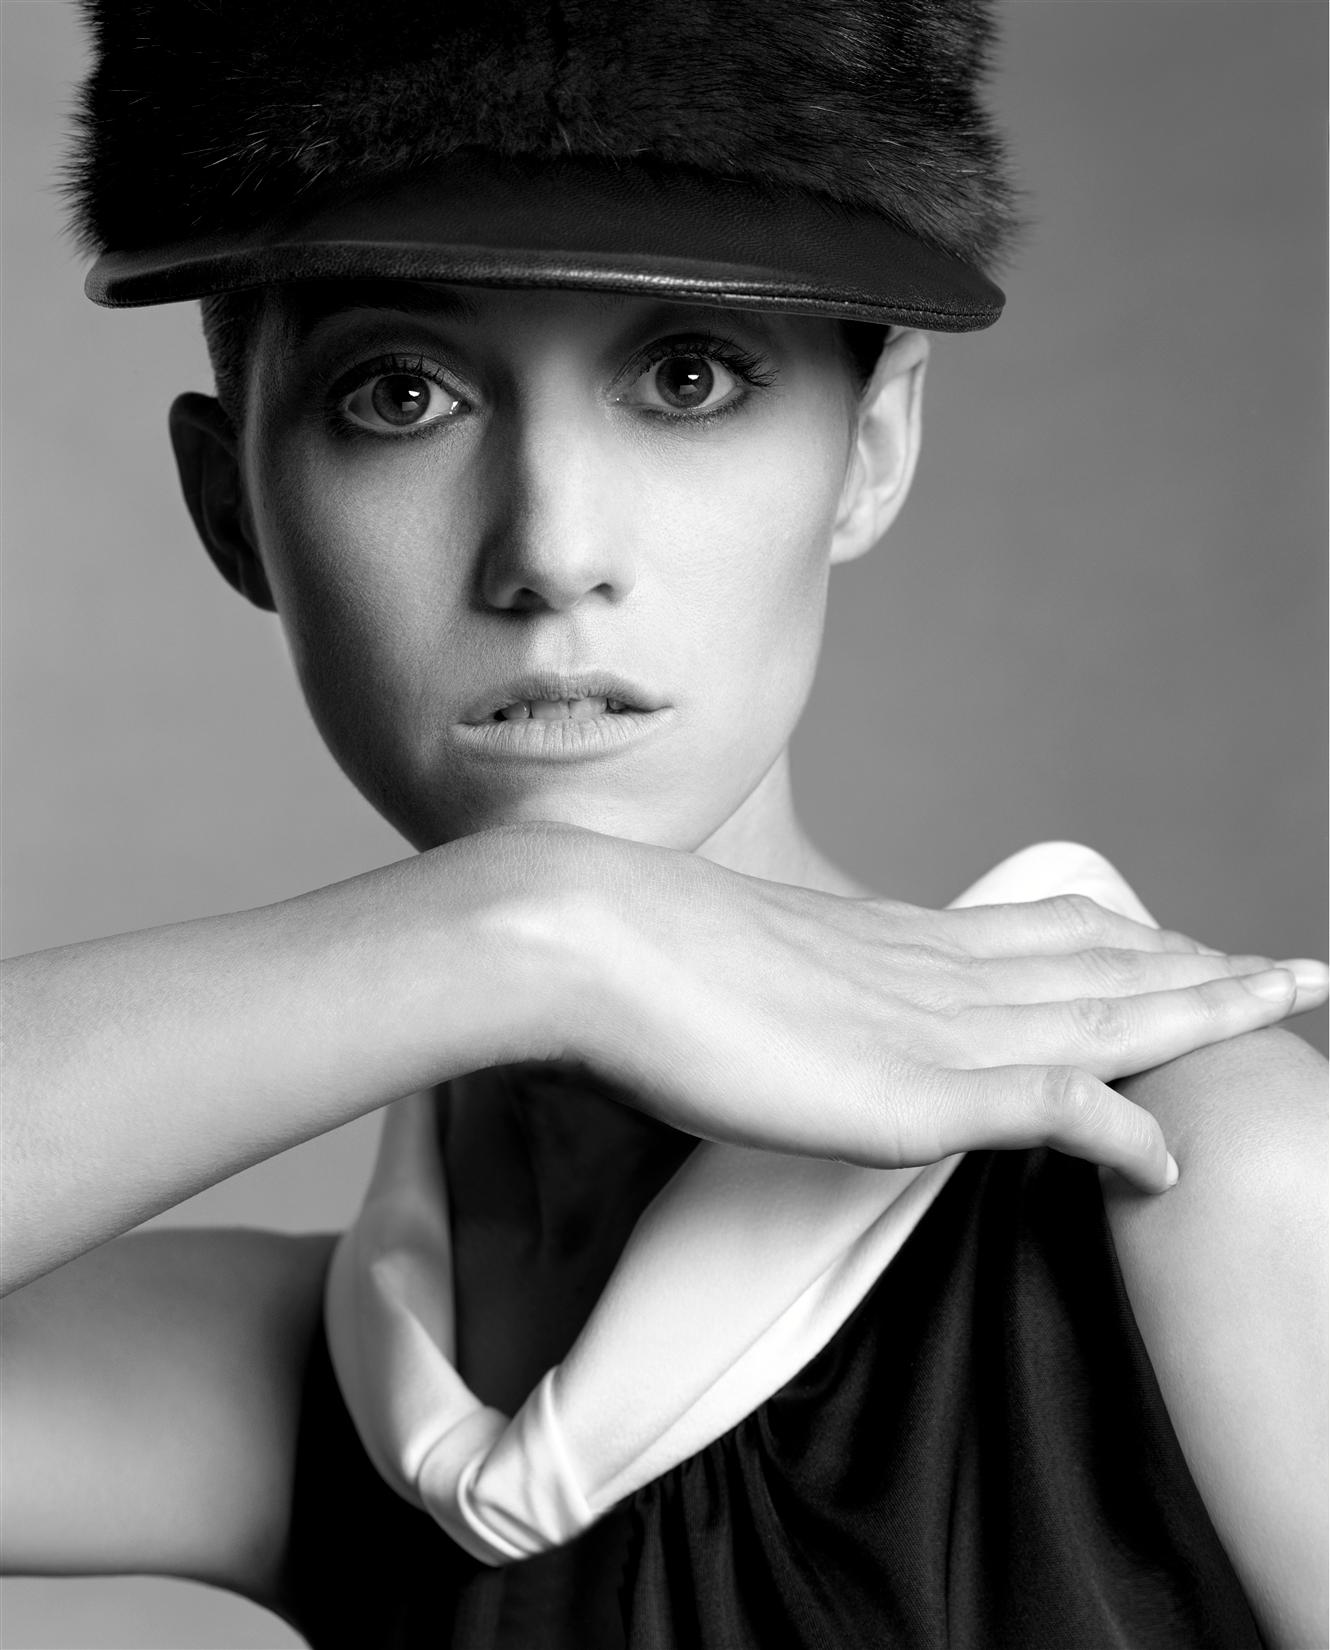 a-guide-to-cool-folkr-charlotte-gainsbourg-15